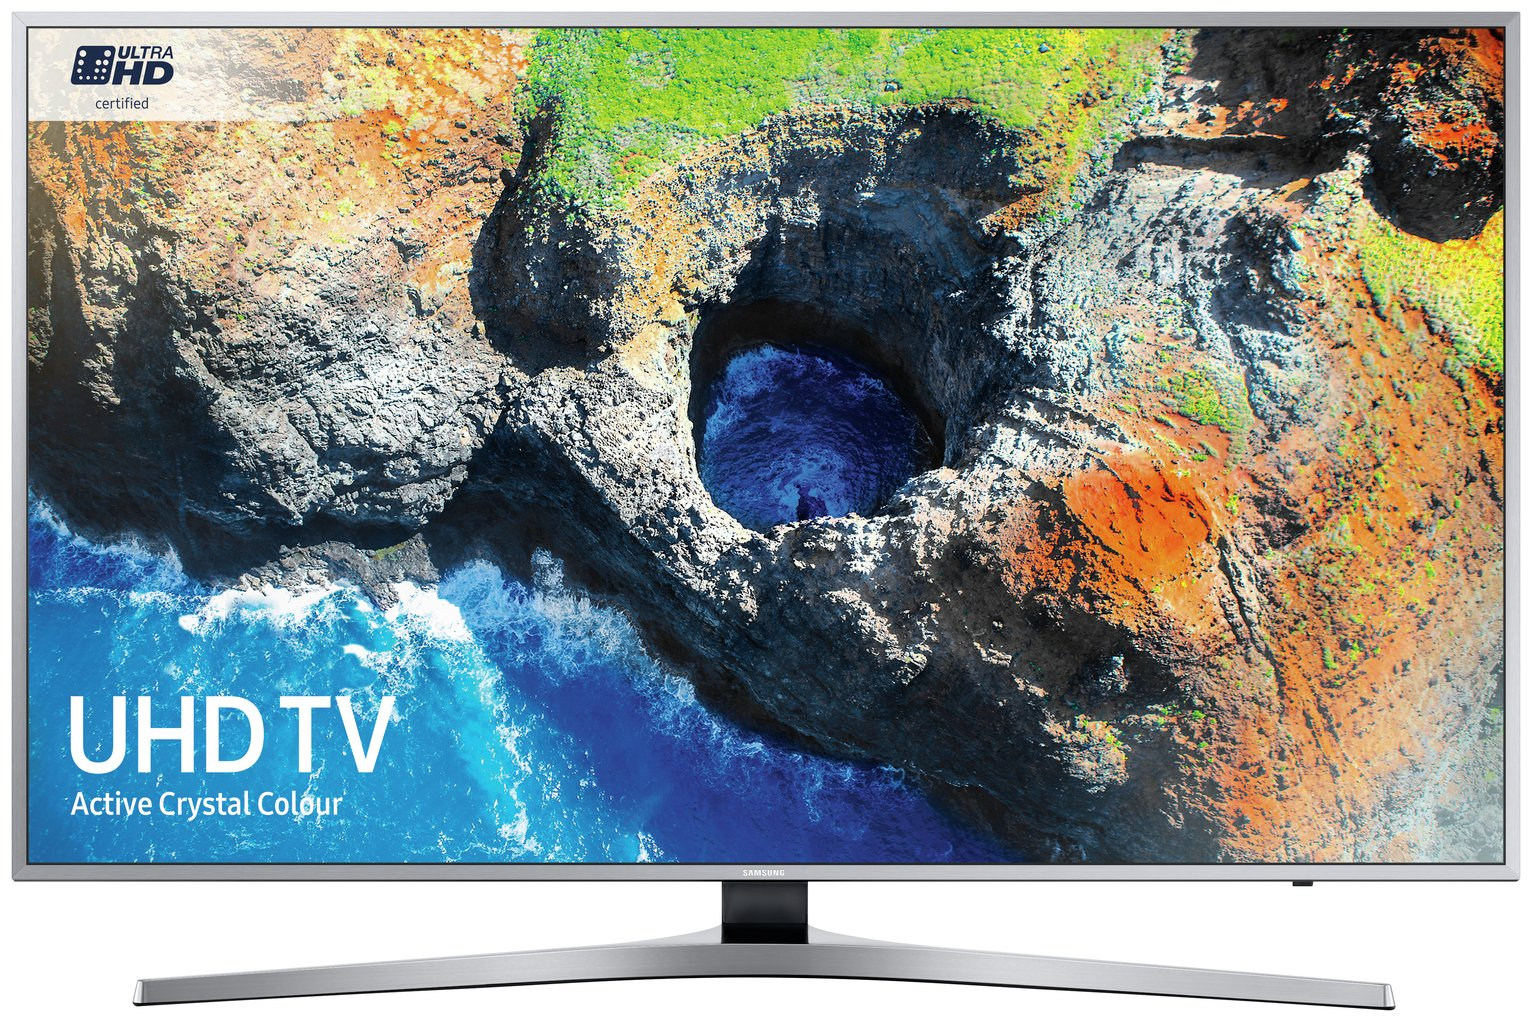 Compare cheap offers & prices of Samsung UE40MU6400 40 Inch UHD Smart TV Active Crystal Colour Television manufactured by Samsung